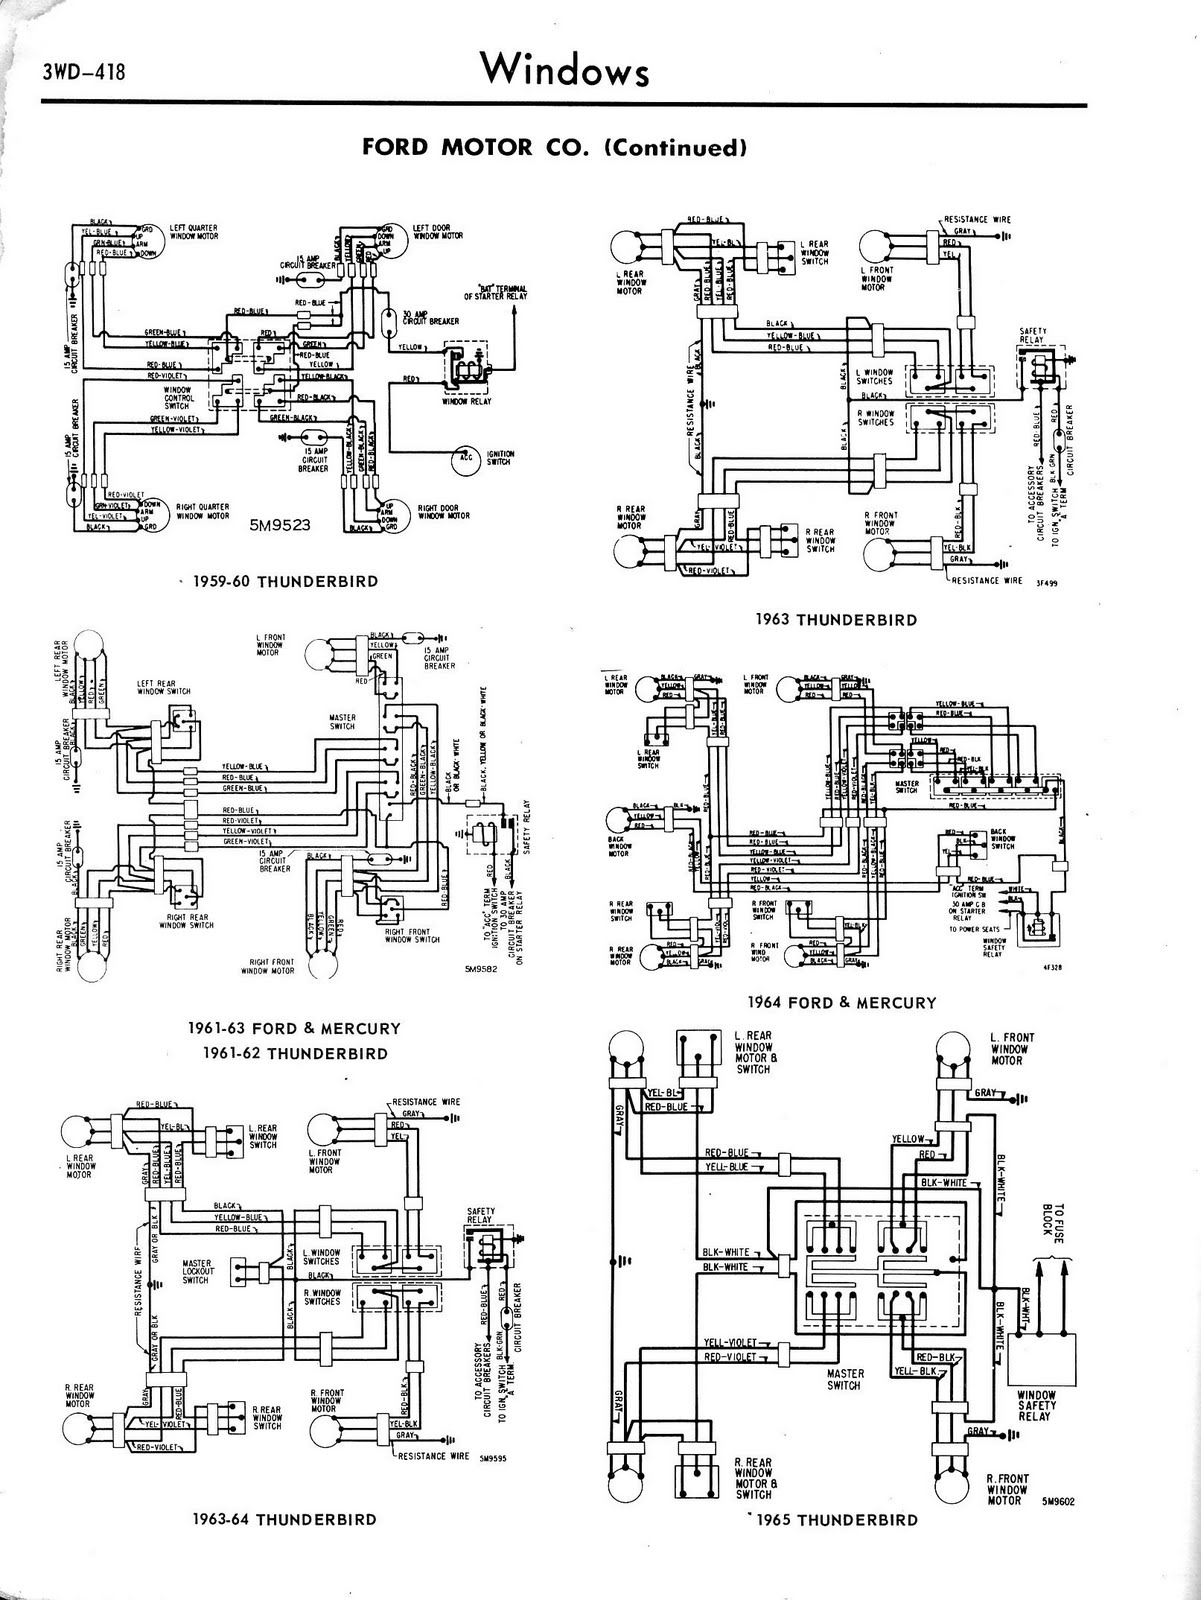 1968 ford truck alternator wiring diagram catalogue of schemas 1968 ford mustang alternator wiring